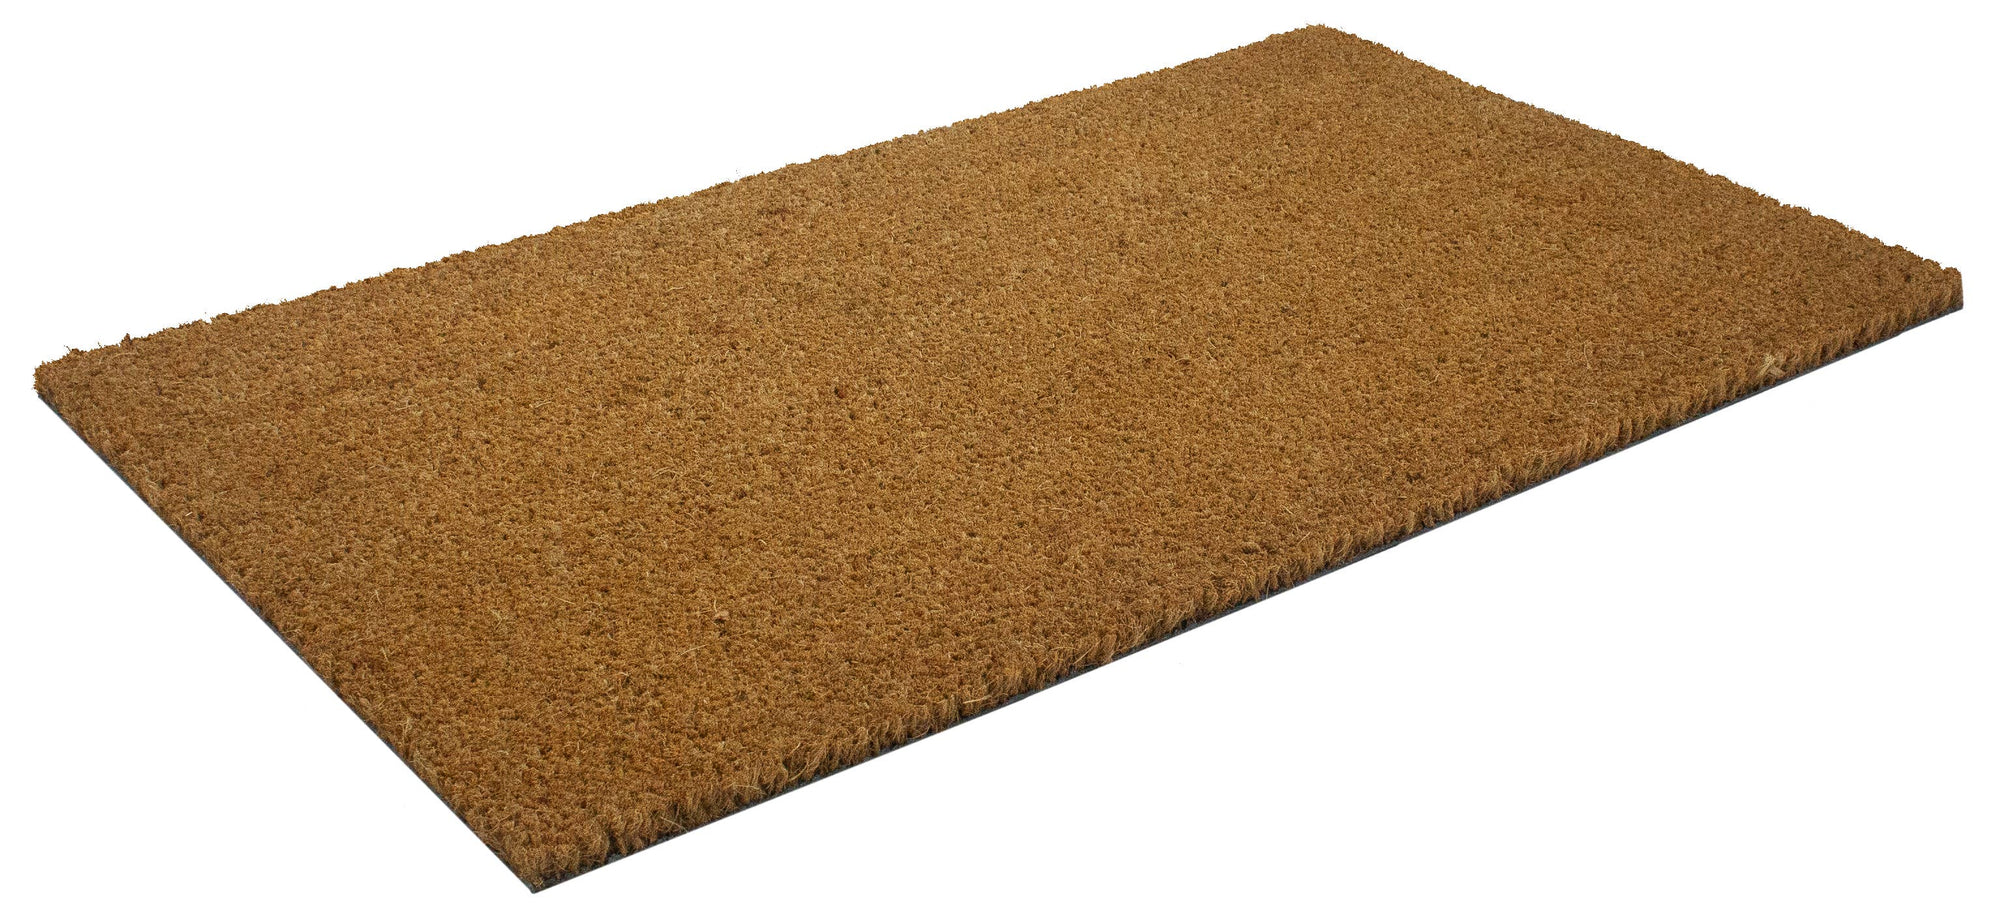 18'' x 30'' Natural Coir Doormat with Backing